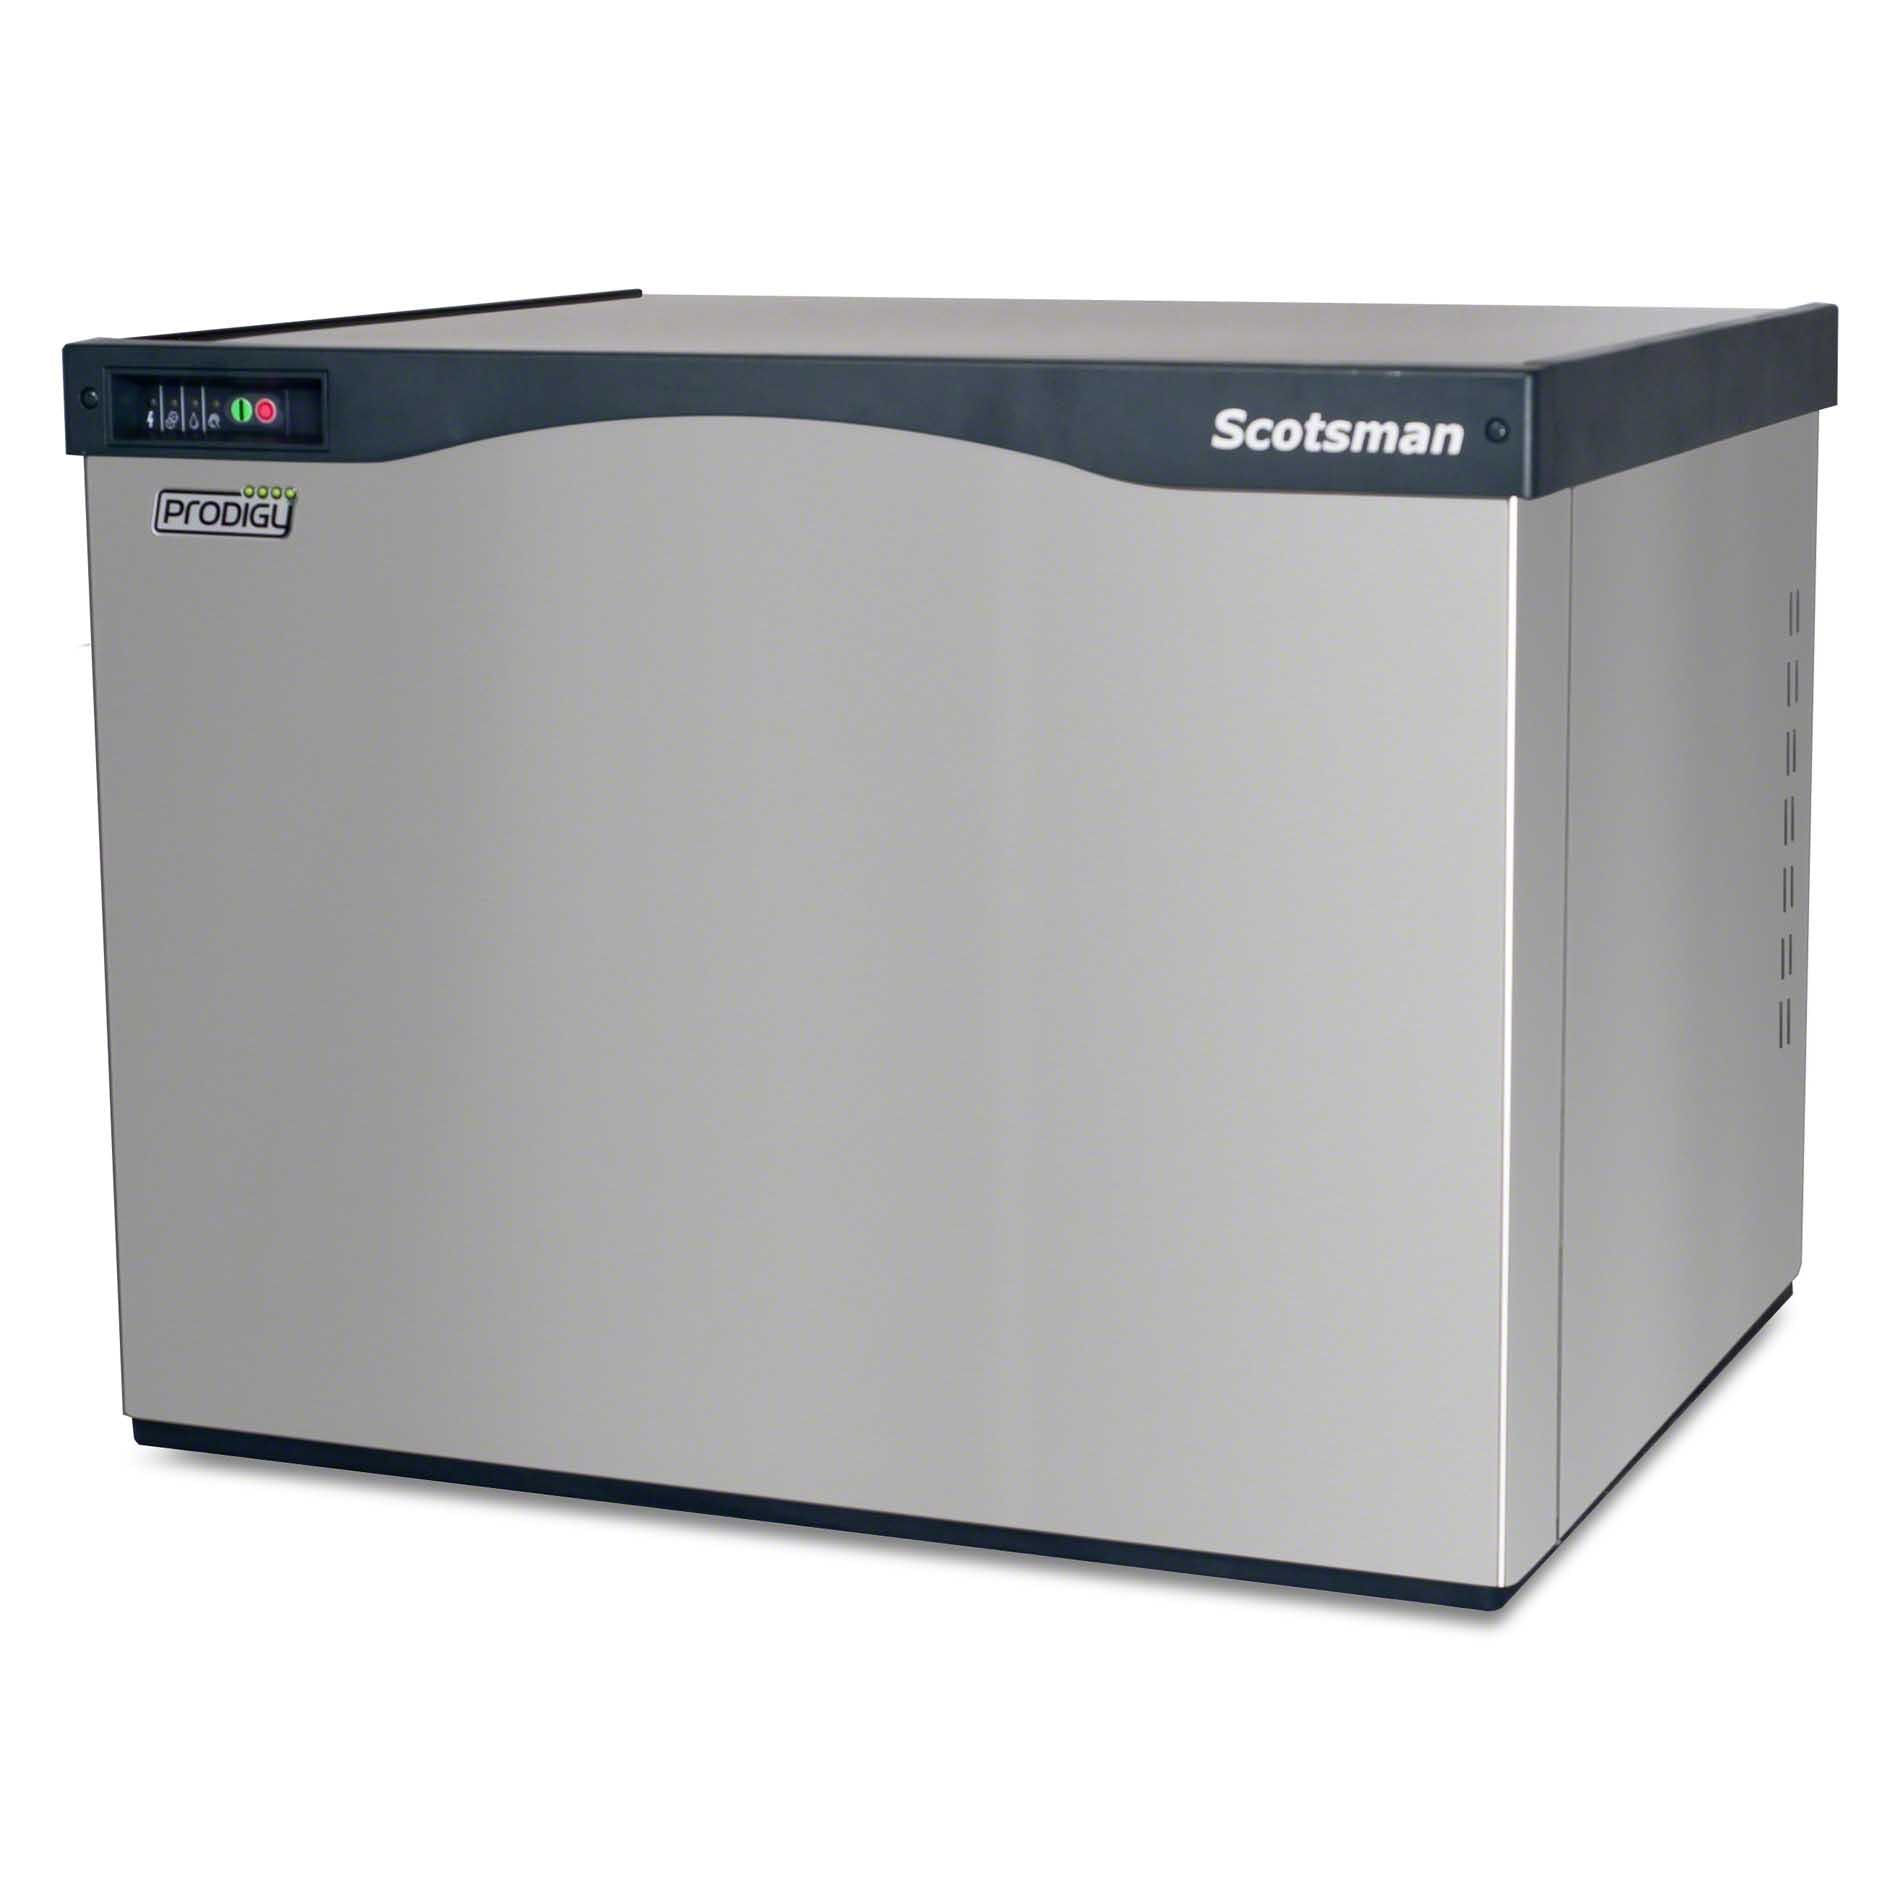 Scotsman - C0330MA-1A 350 lb Full Size Cube Ice Machine - Prodigy Series - sold by Food Service Warehouse